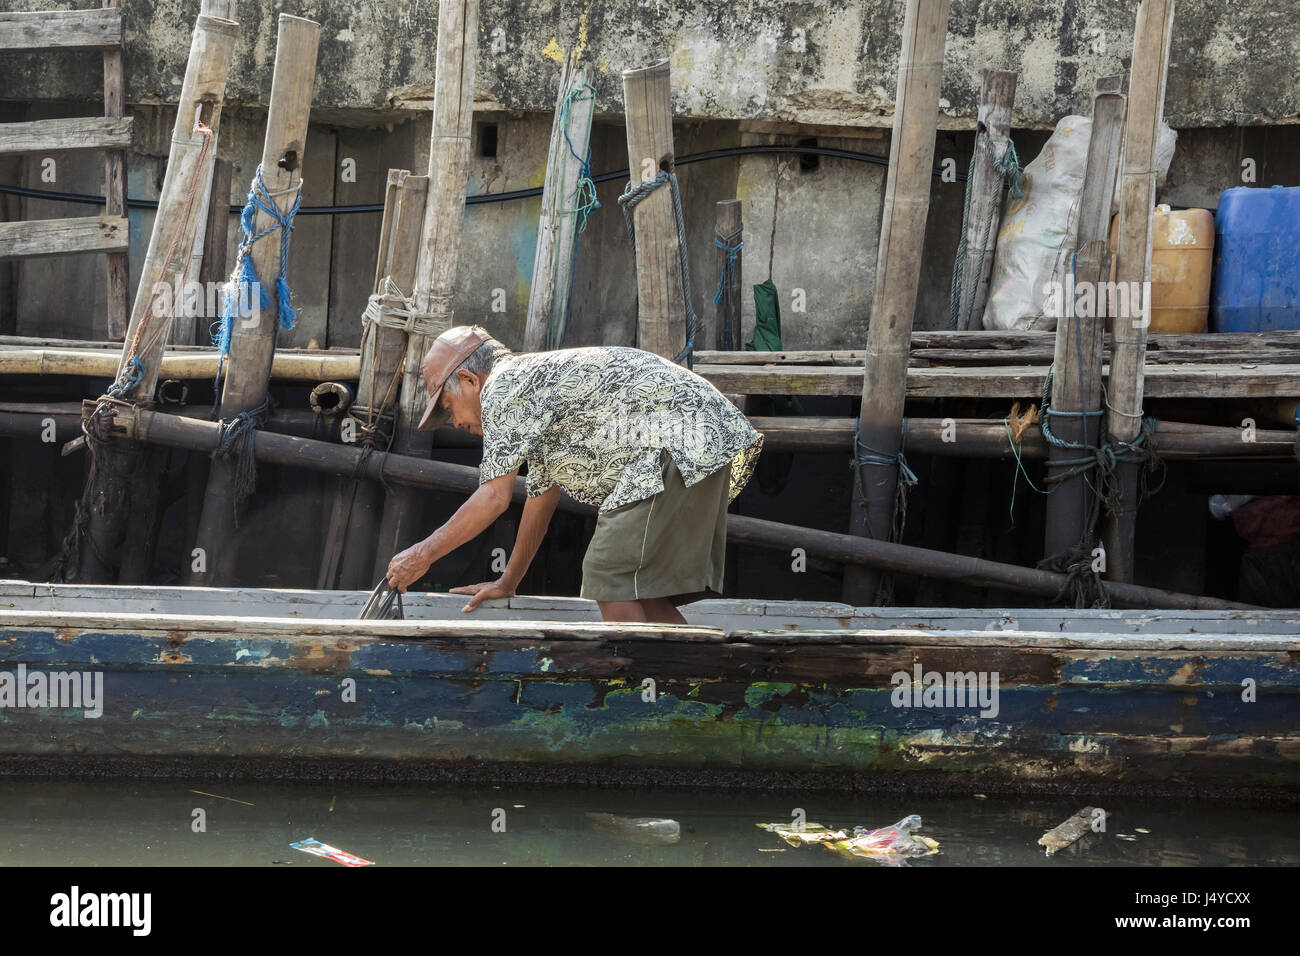 An old man in a ball cap retrieves a bag of goods from the bottom of his old wooden canoe by one of the bamboo walkways - Stock Image